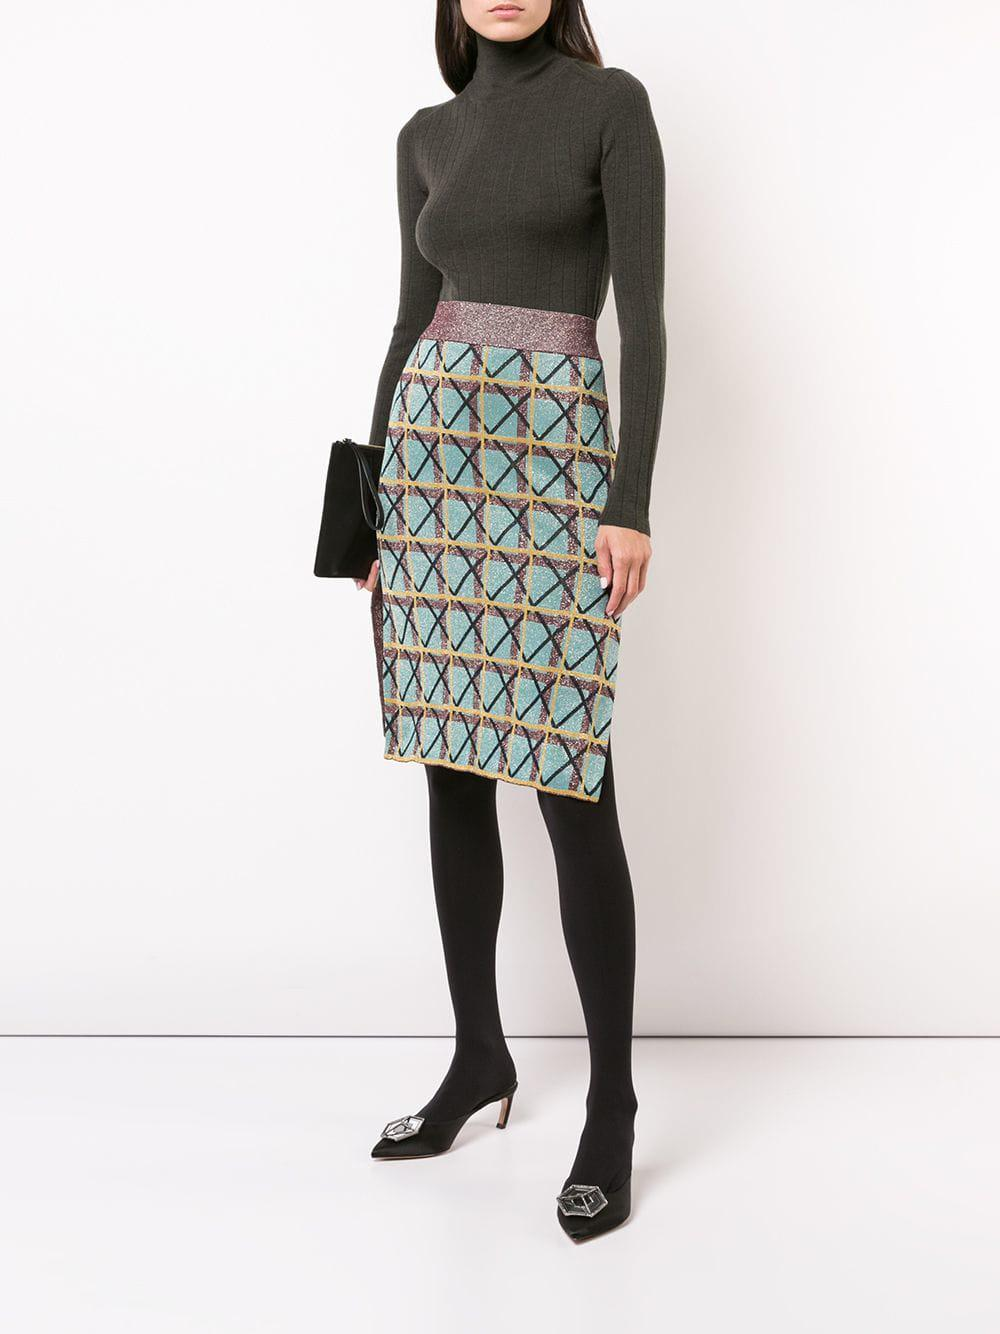 a2307aaeac8e Lyst - ALEXACHUNG Geometric Pattern Pencil Skirt